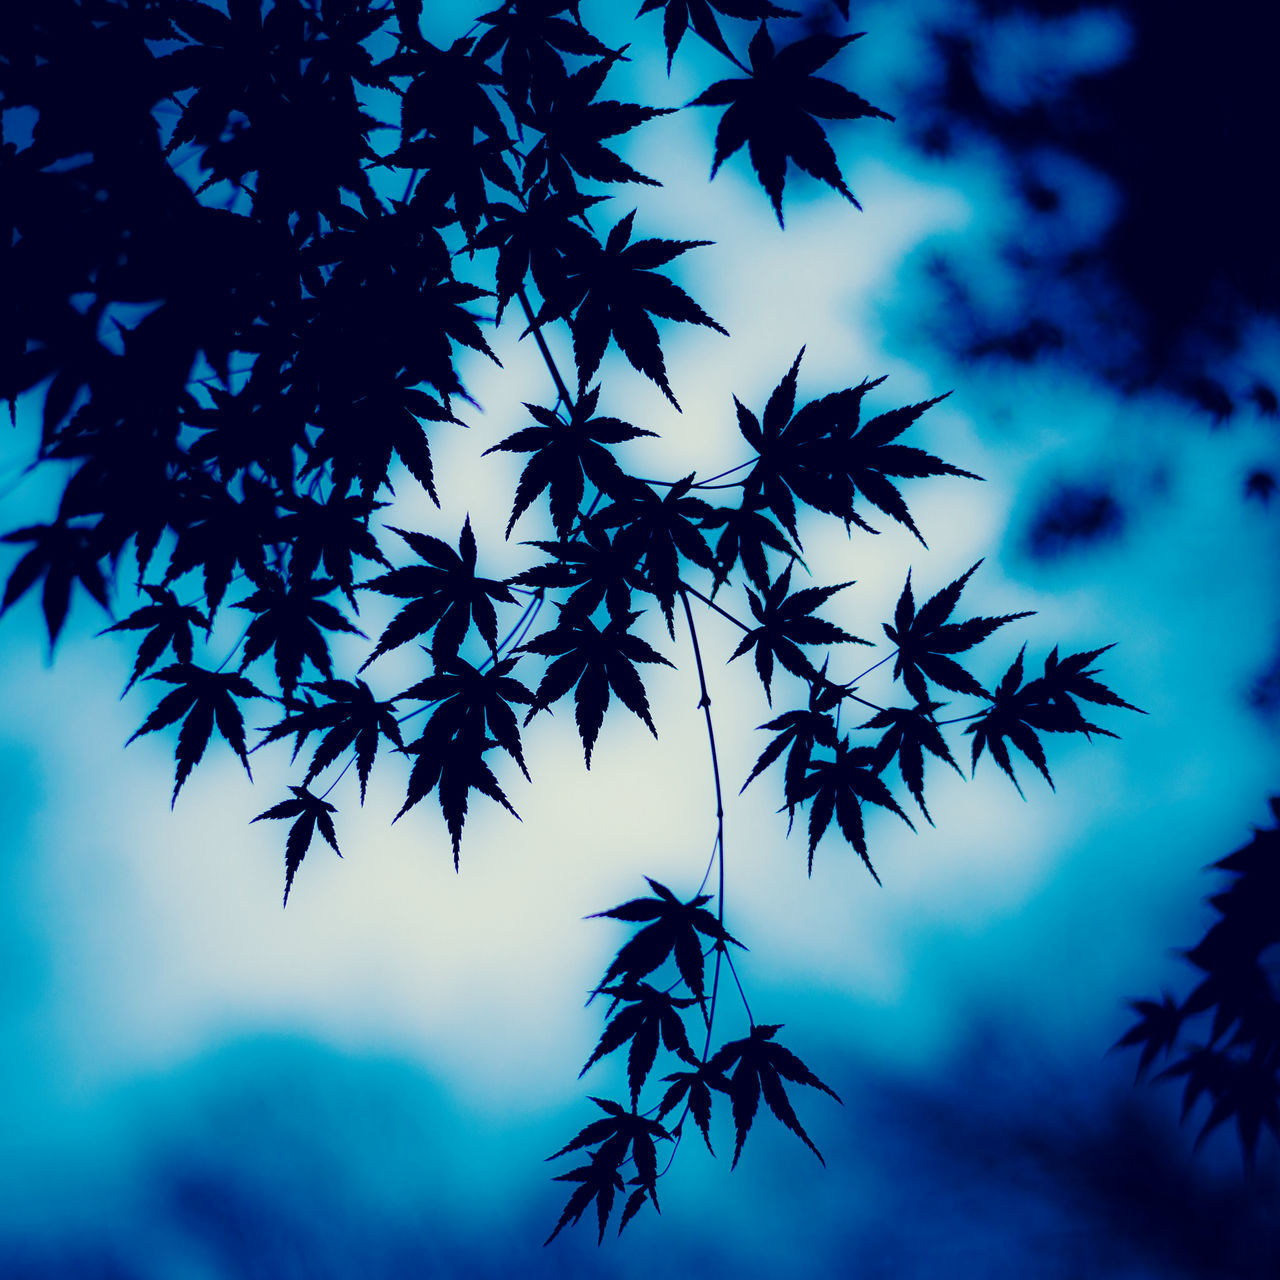 no people, low angle view, sky, outdoors, day, nature, tree, beauty in nature, close-up